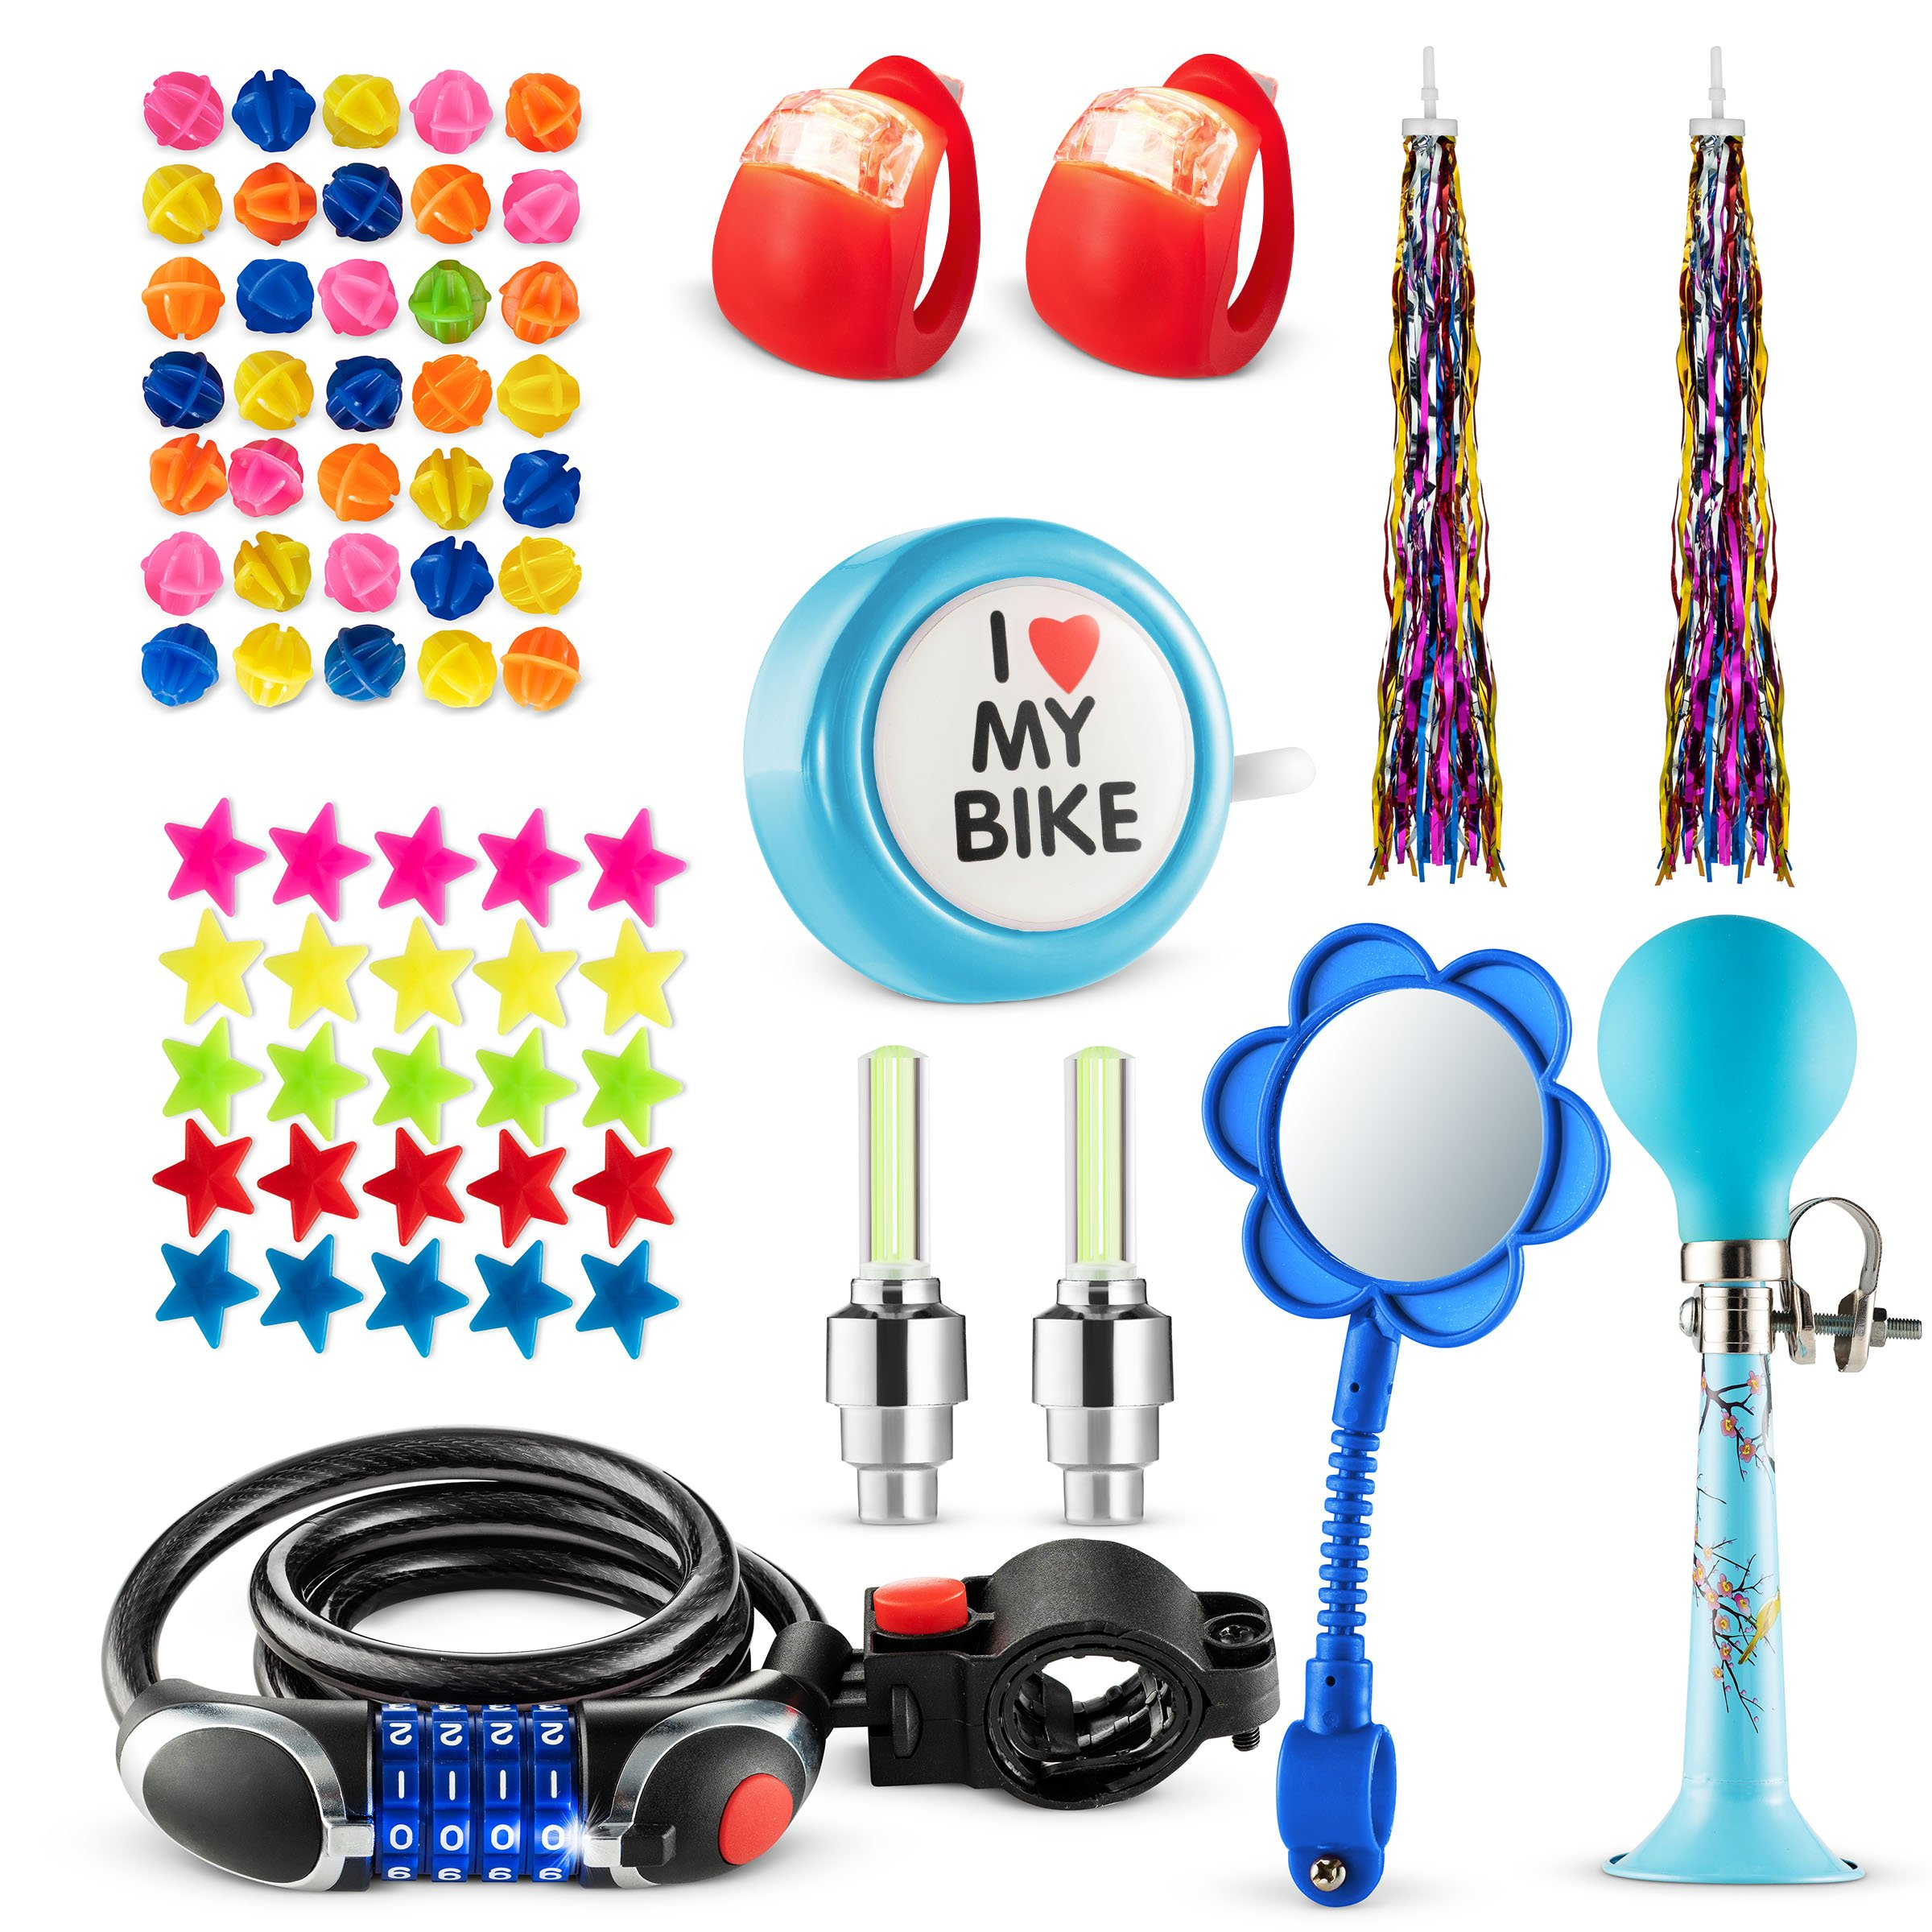 Bikes On Hikes 70 Piece Children's Bike Set Blue- Includes Horn, LED Combination Chain Lock, Mirror, Bell, 2 Streamers, 2 Flash Valve Sealing Caps, 2 Red Lights, 30 Stars, 30 Balls Spoke Lights